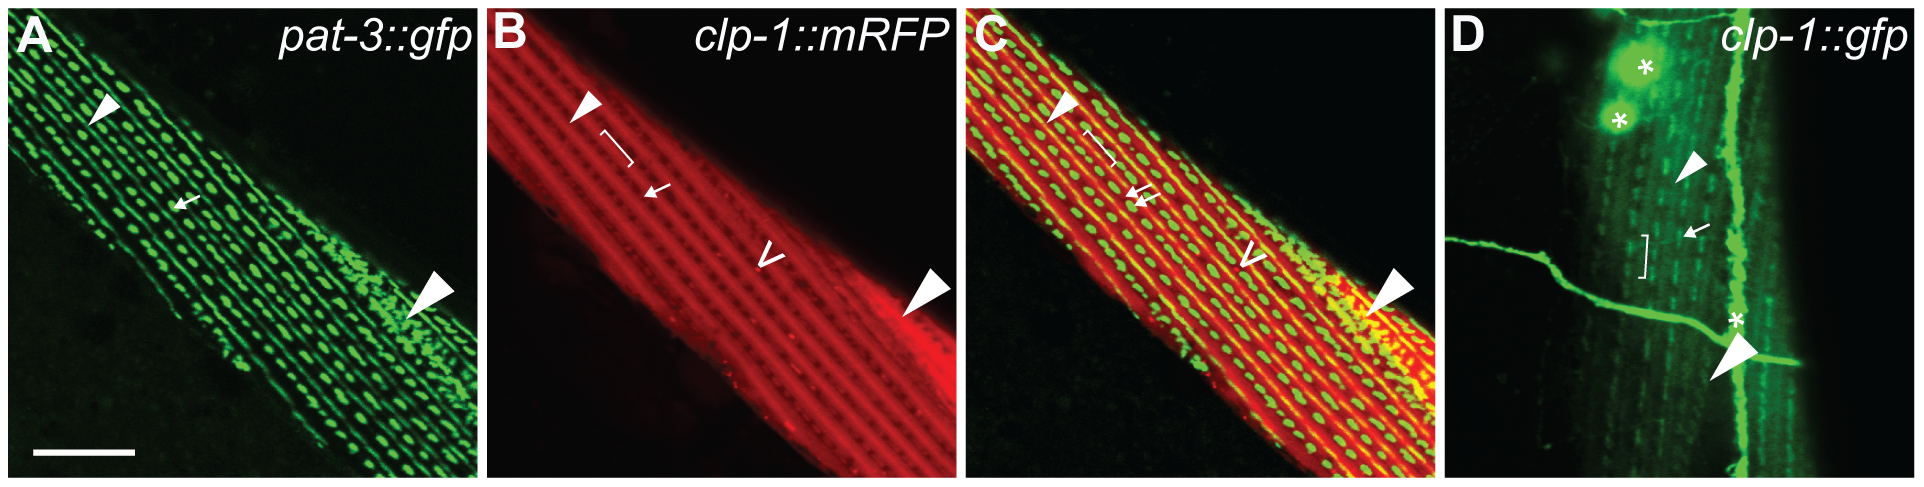 Ectopic <i>unc-54p::clp-1::mrfp</i> localizes to M-lines and adhesions plaques in body wall muscle.